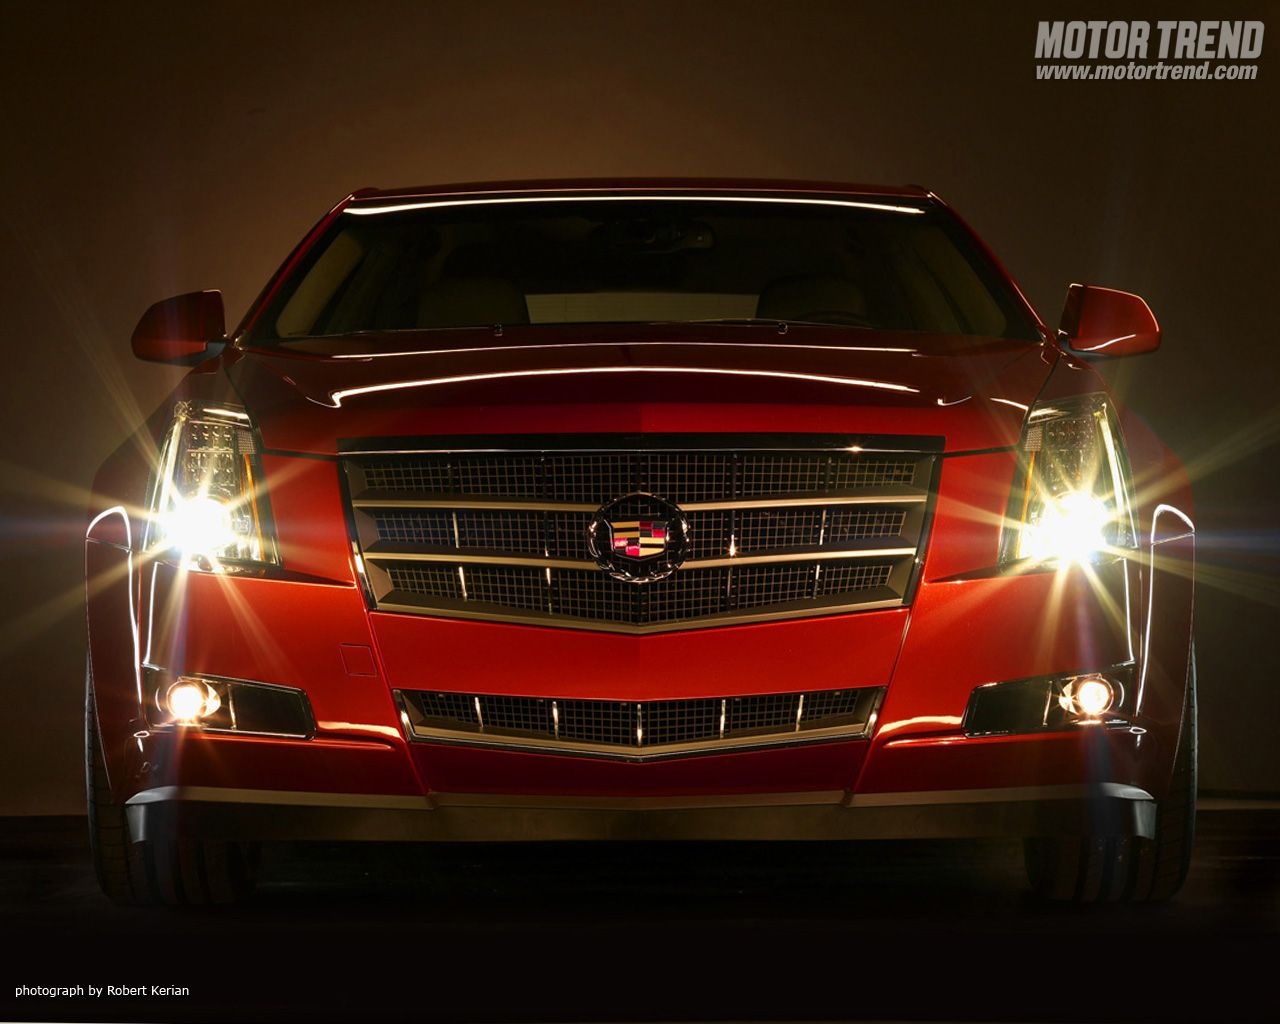 Free Download 2008 Cadillac Cts Wallpaper Gallery Motor Trend 1280x1024 For Your Desktop Mobile Tablet Explore 49 Cadillac Cts Wallpaper Cadillac Escalade Wallpaper Cadillac Ats Wallpaper Cadillac Racing Wallpaper